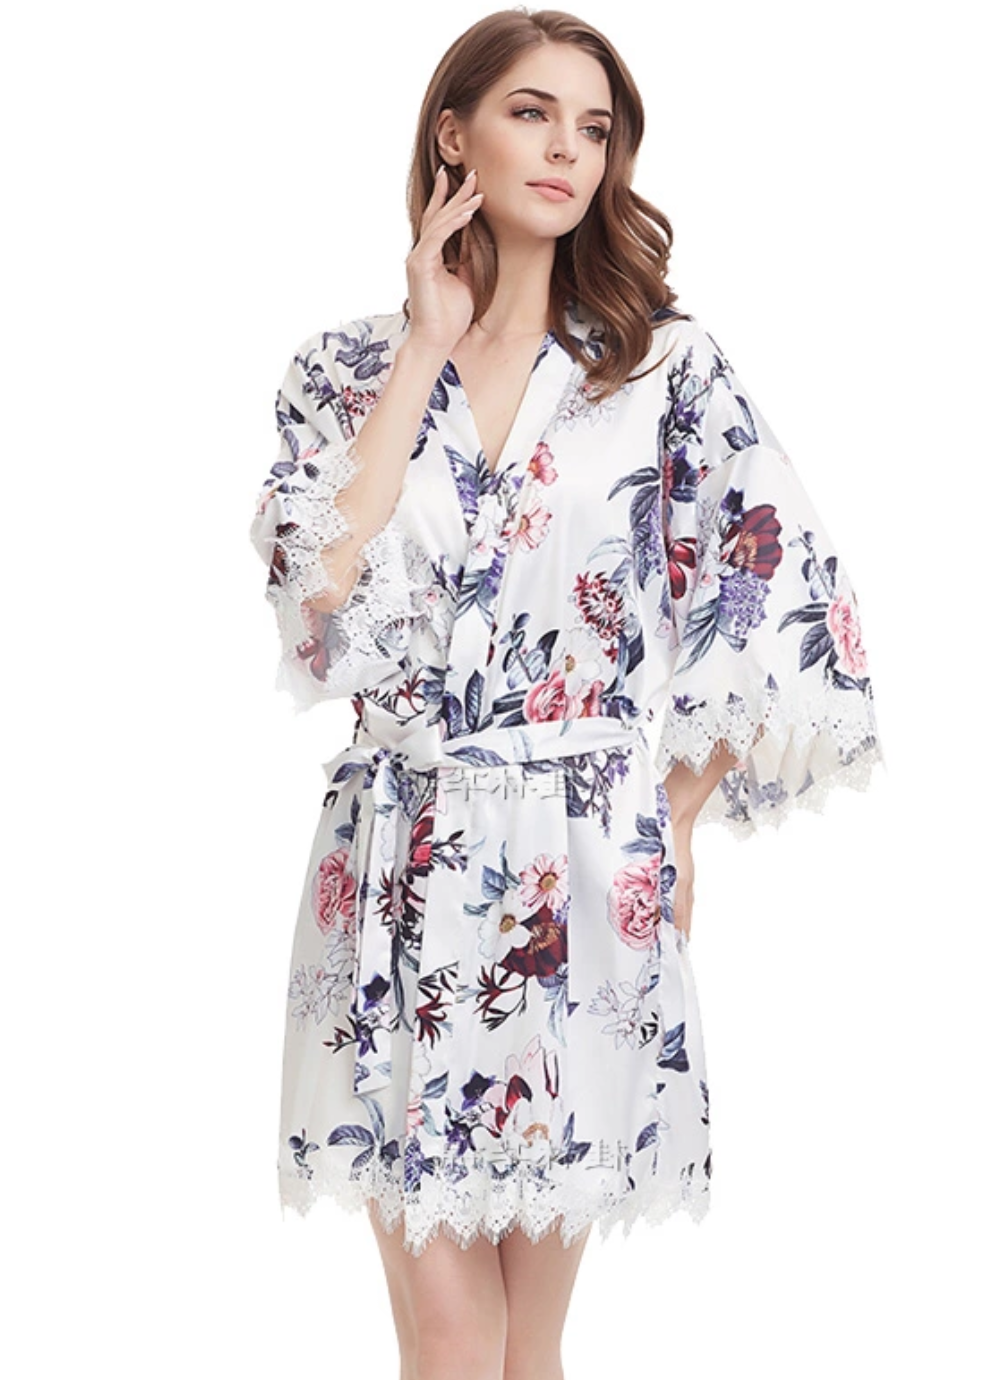 White floral satin and lace robe